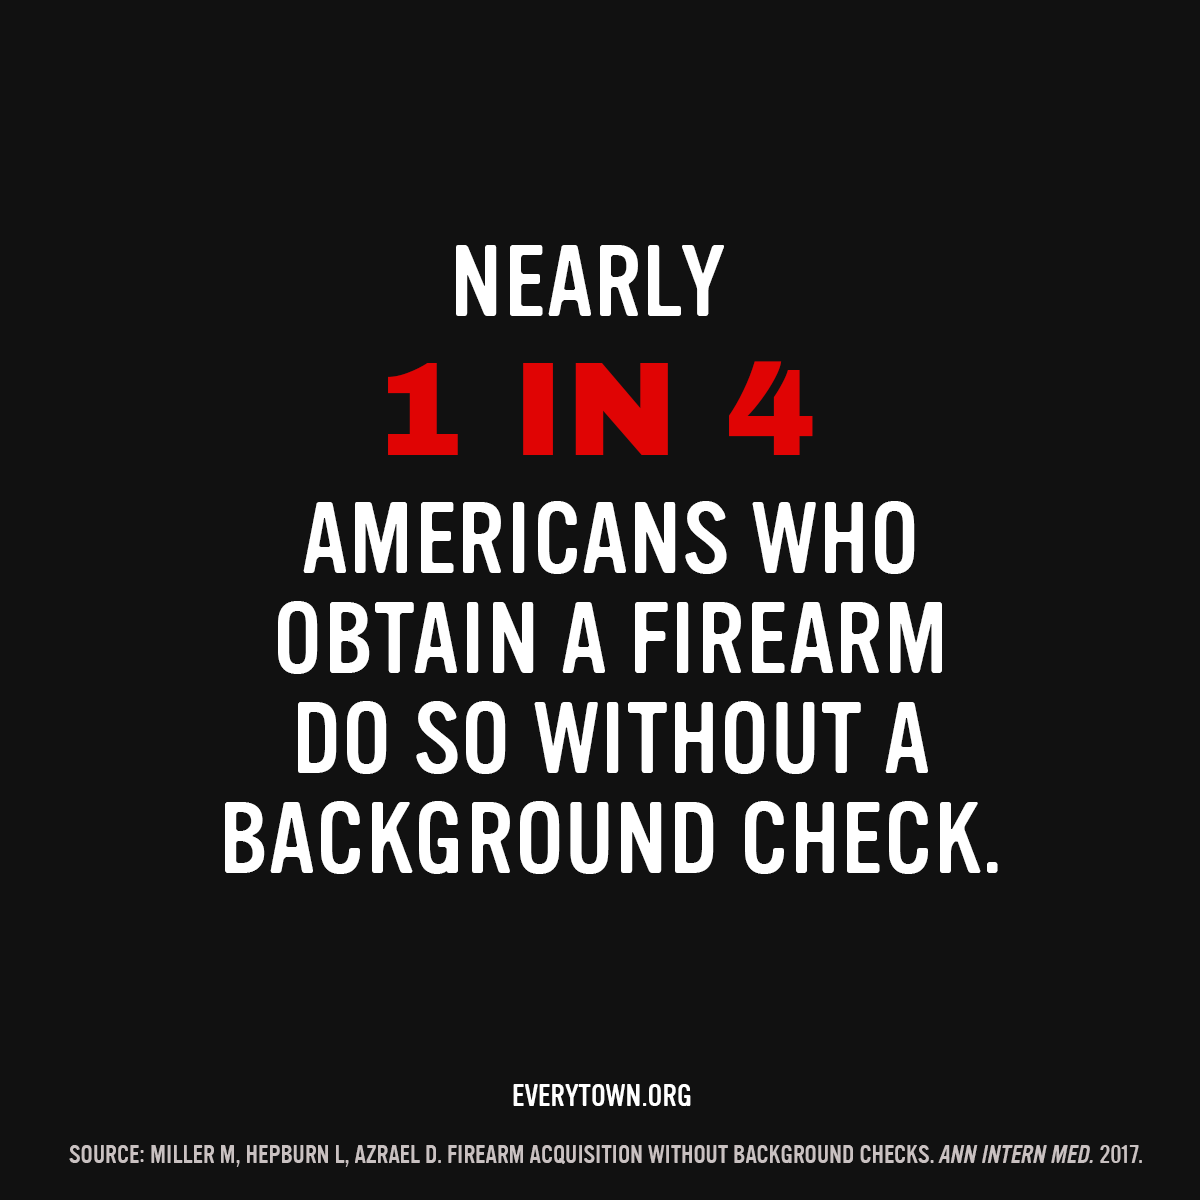 Requiring background checks on all gun sales is essential to reducing gun violence – not just those sold in brick and mortar stores, but those sold online or at gun shows.   Tell your member of Congress to #UpdateBackgroundChecks: Text CHECKS to 644-33 and we'll connect you.